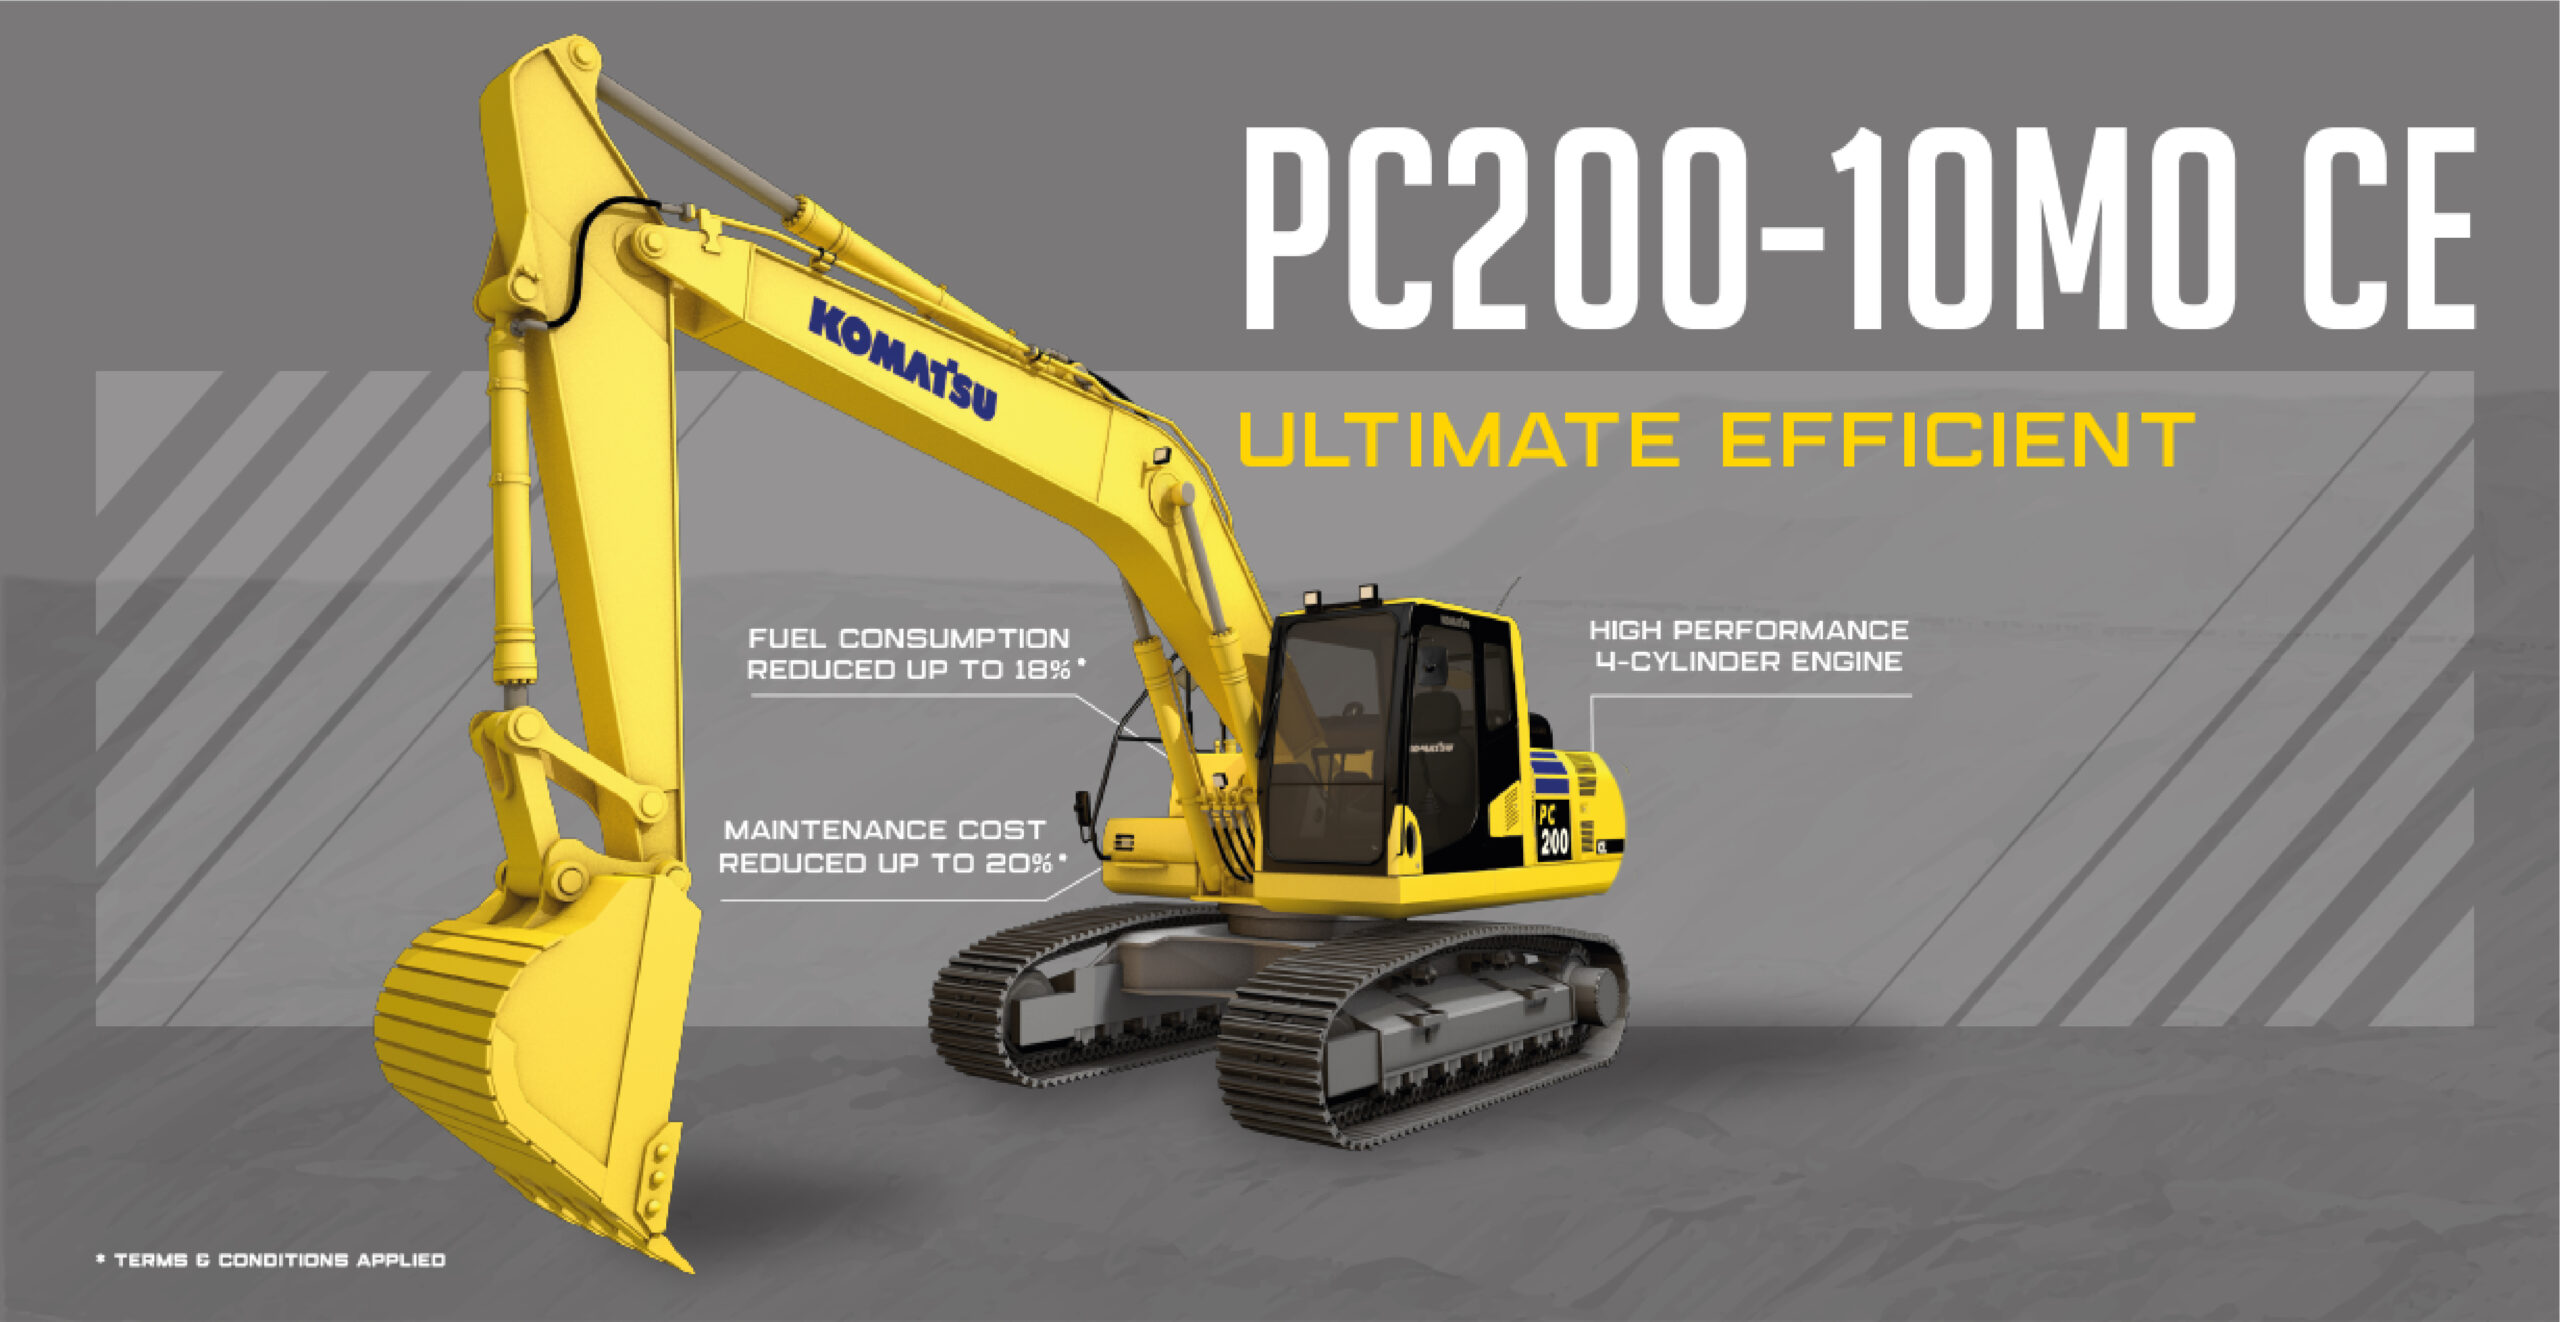 Komatsu PC200-10M0 CE: Achieve Work Efficiency with an Affordable Excavator in Its Class!